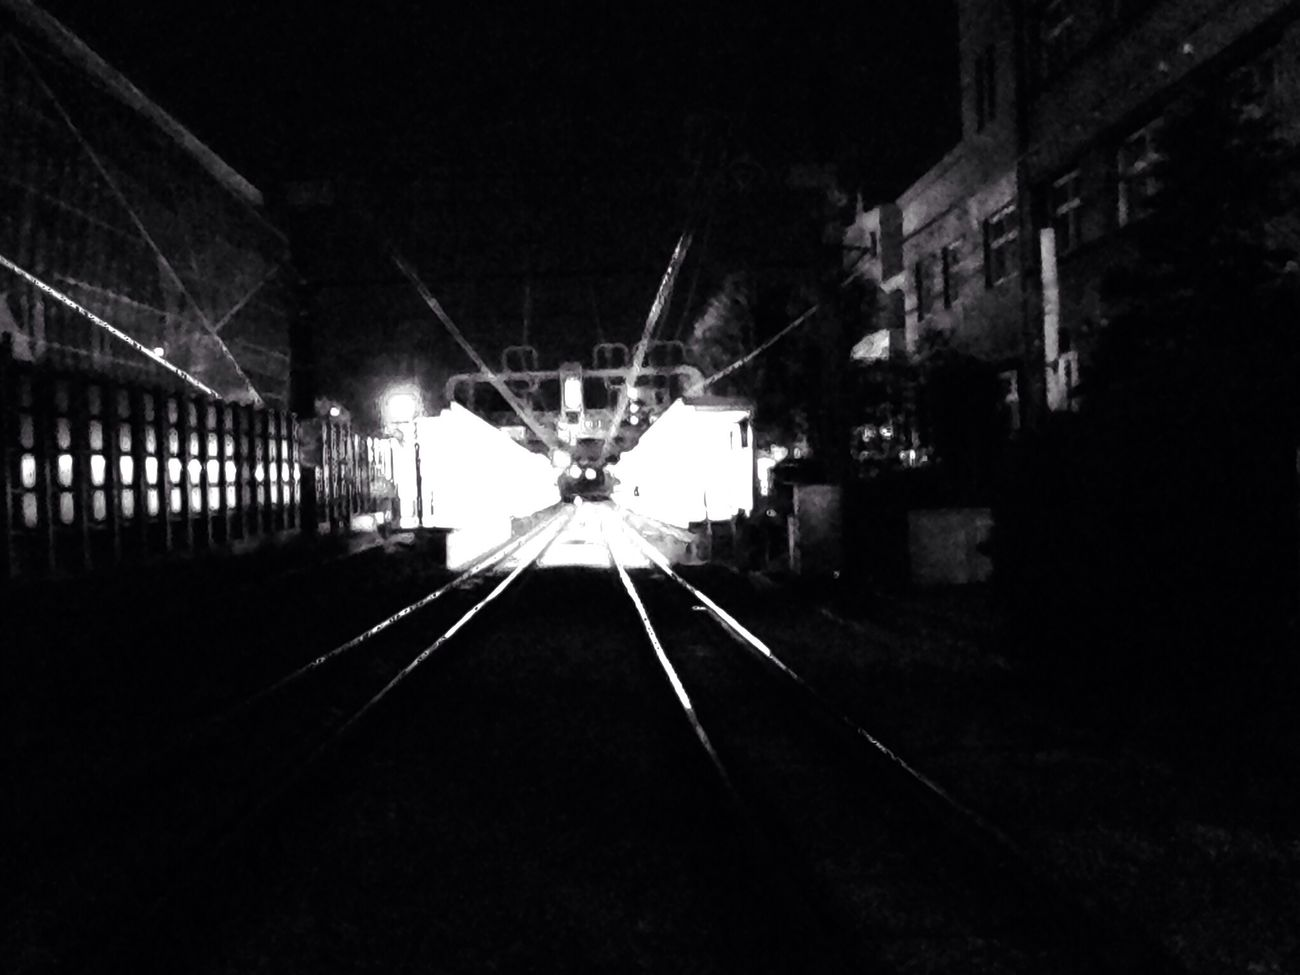 Railroad crossing.2